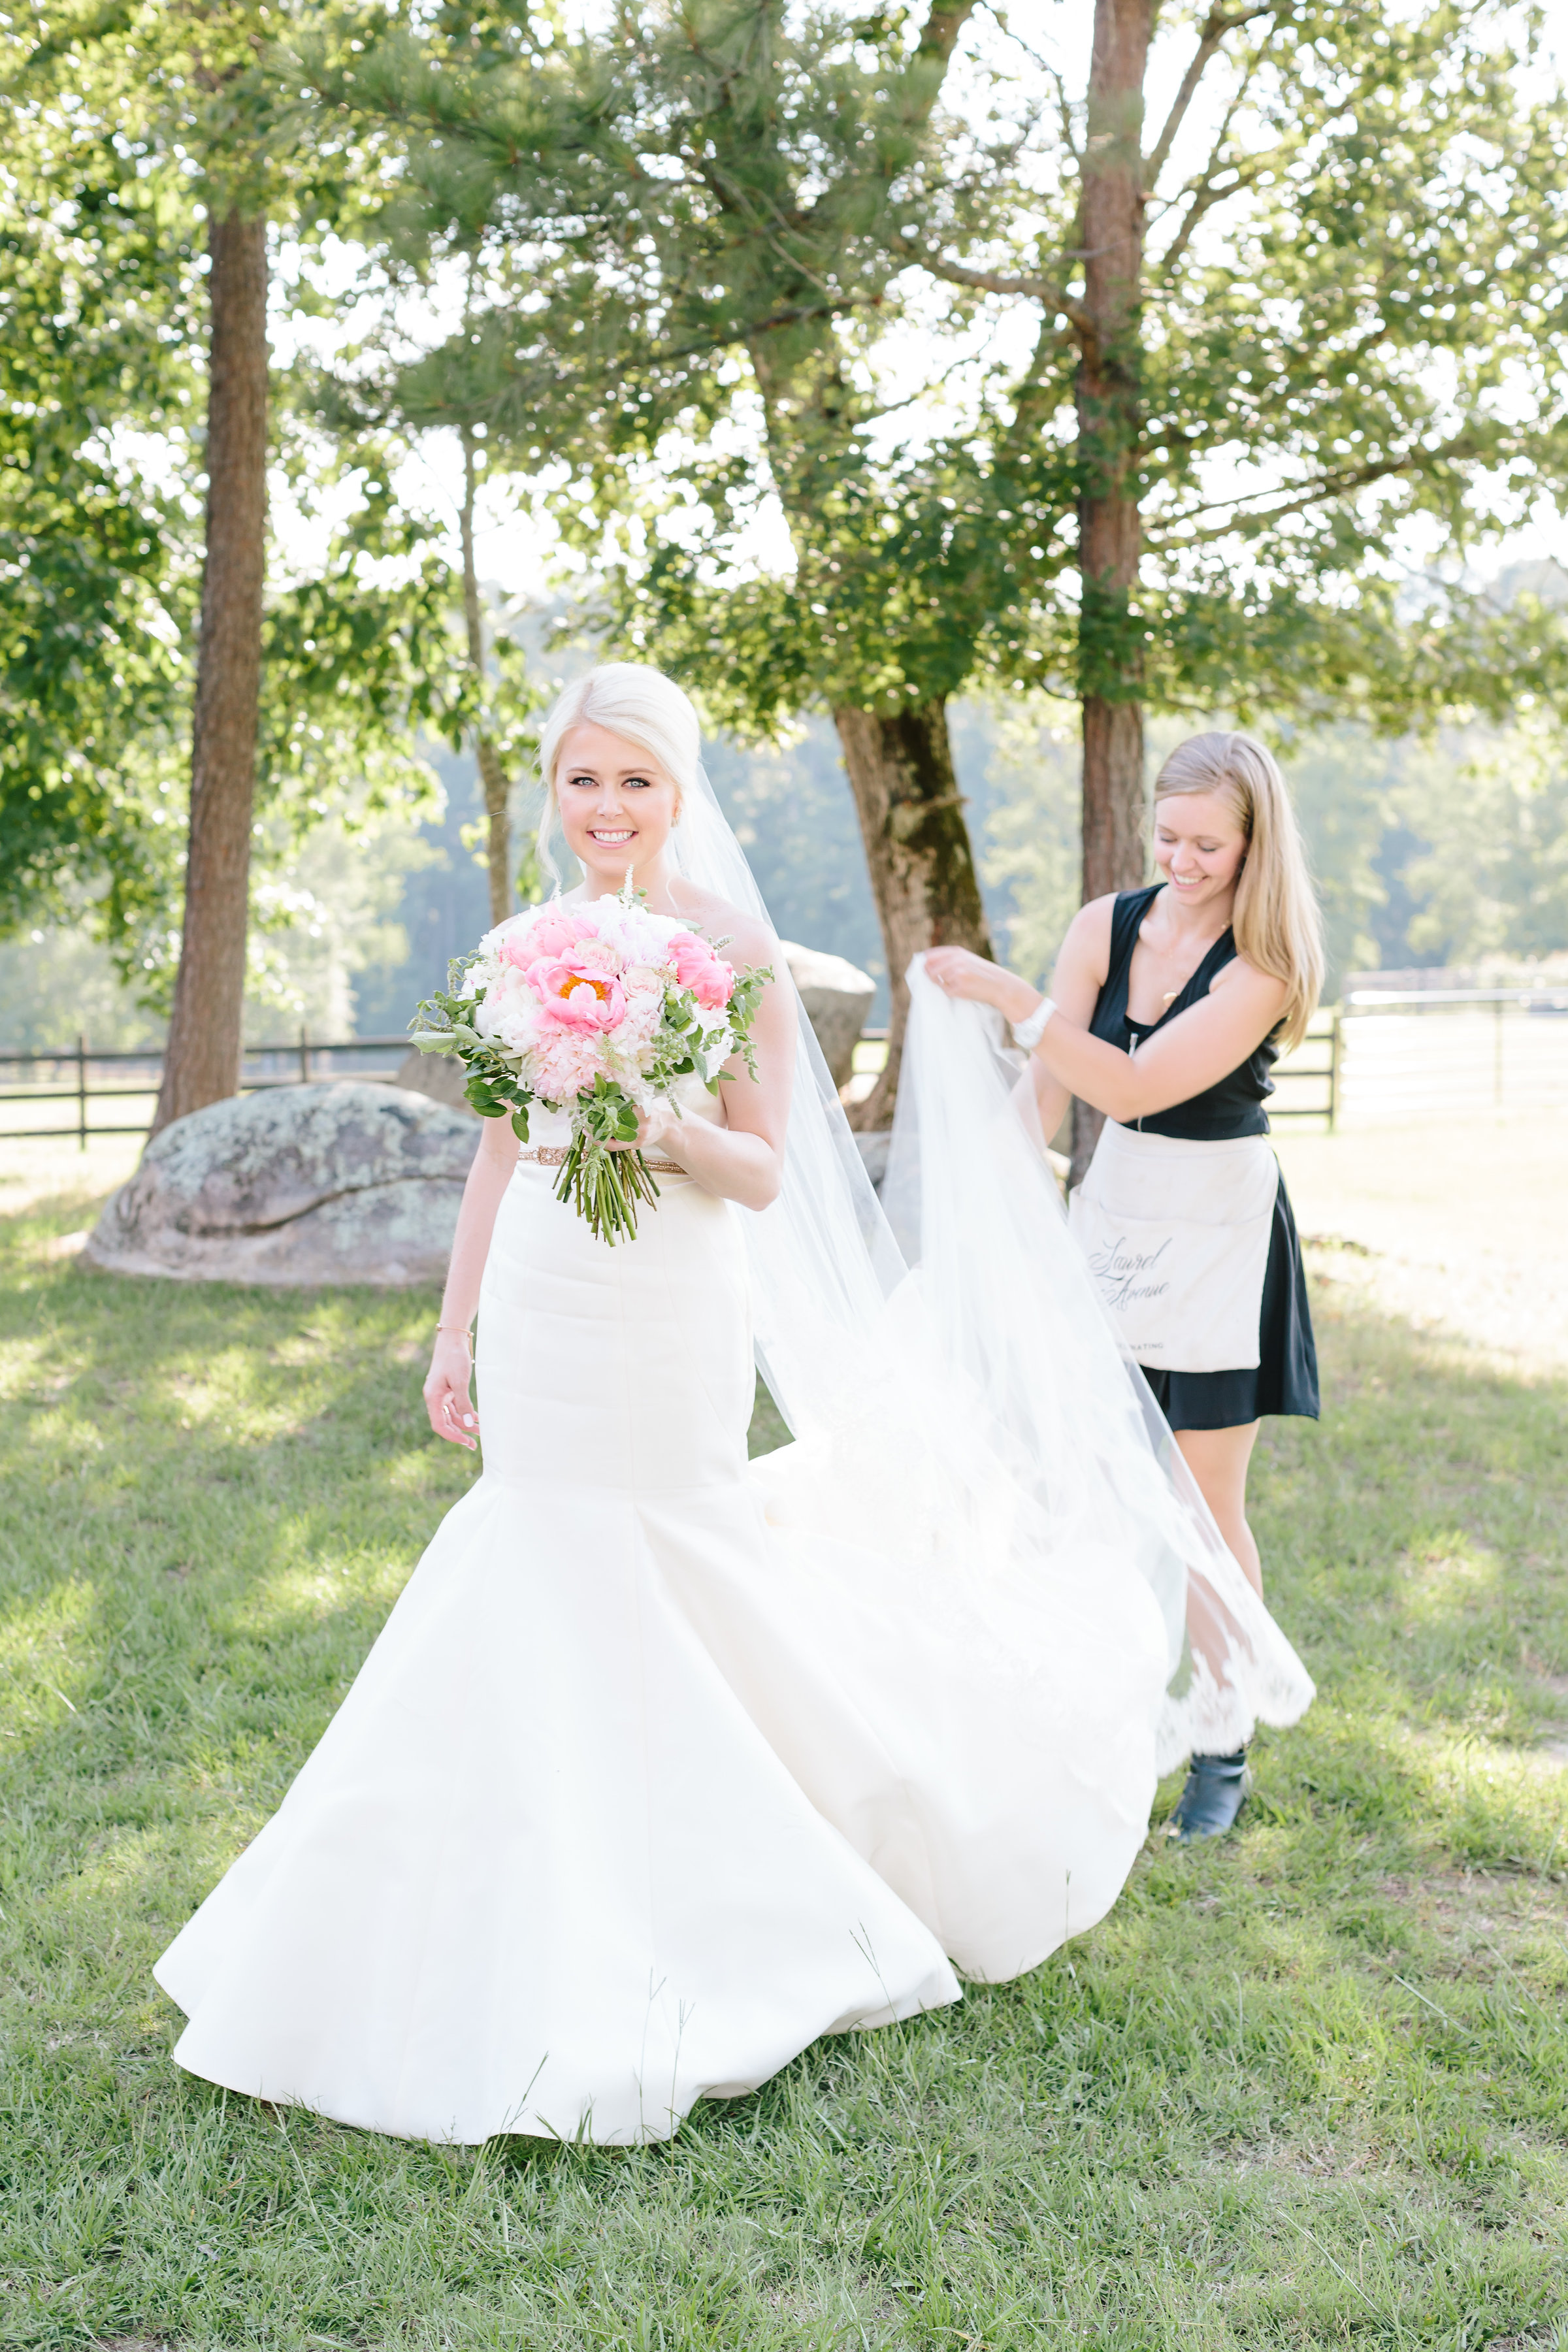 - After spending 4 years coordinating 50+ weddings in 6 states, I now take on 4 weddings per calendar year.Currently, I'm taking on less weddings to make more room in my calendar for college ministry + speaking + working with Chancey Charm as a mentor to their incredible staff of wedding planners.If you're here looking for wedding coordinating, apply, and I'll respond with my availability, or I'll refer you to a wonderful, trusted coordinator near you.